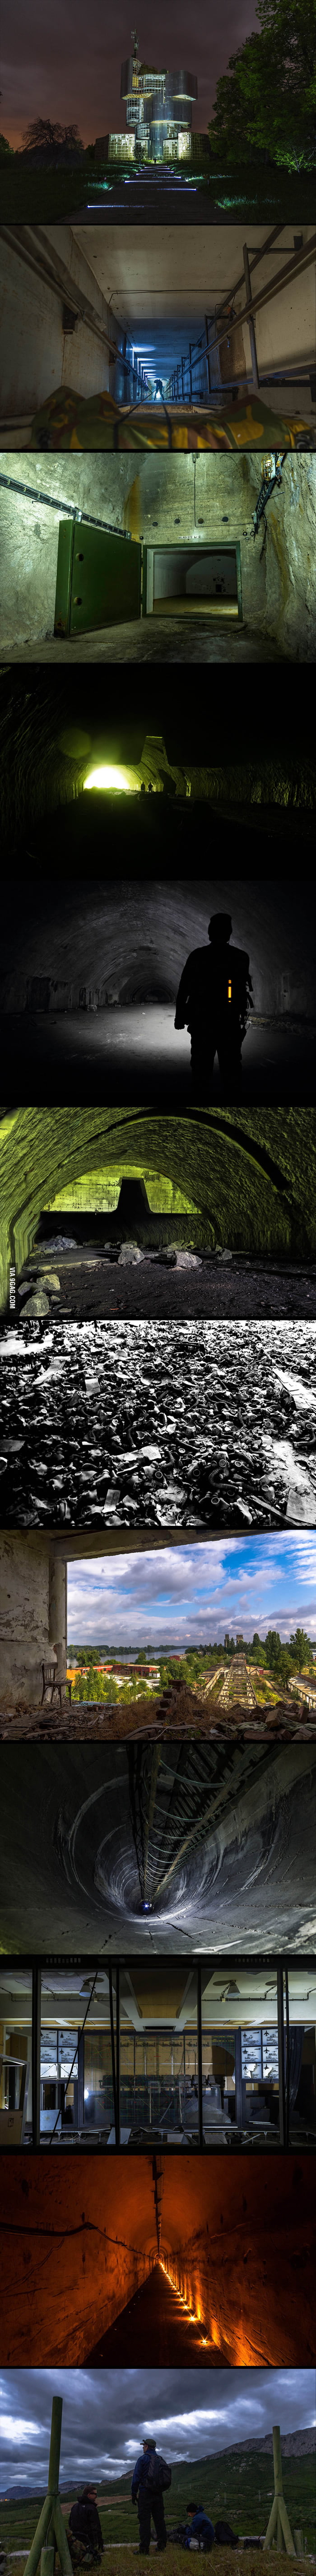 Abandoned locations in Croatia